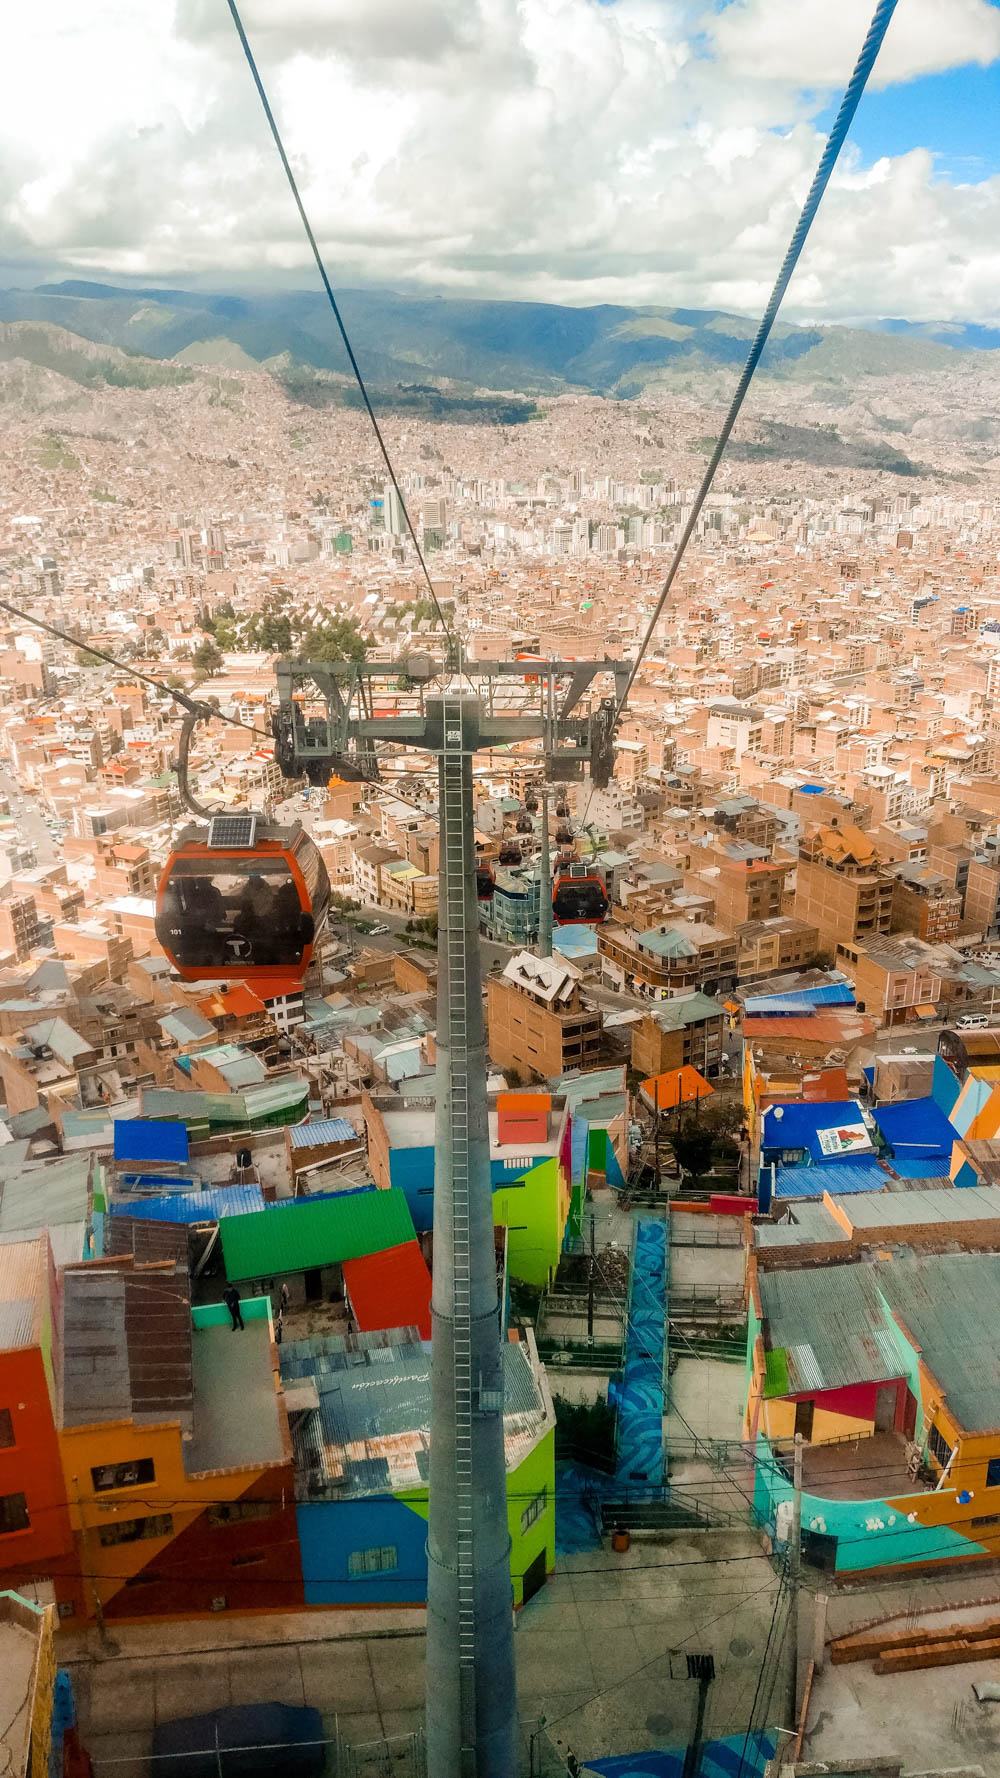 Mi Teleférico (cable car network) in La Paz - Bolivia 2-week itinerary and travel guide | Aliz's Wonderland